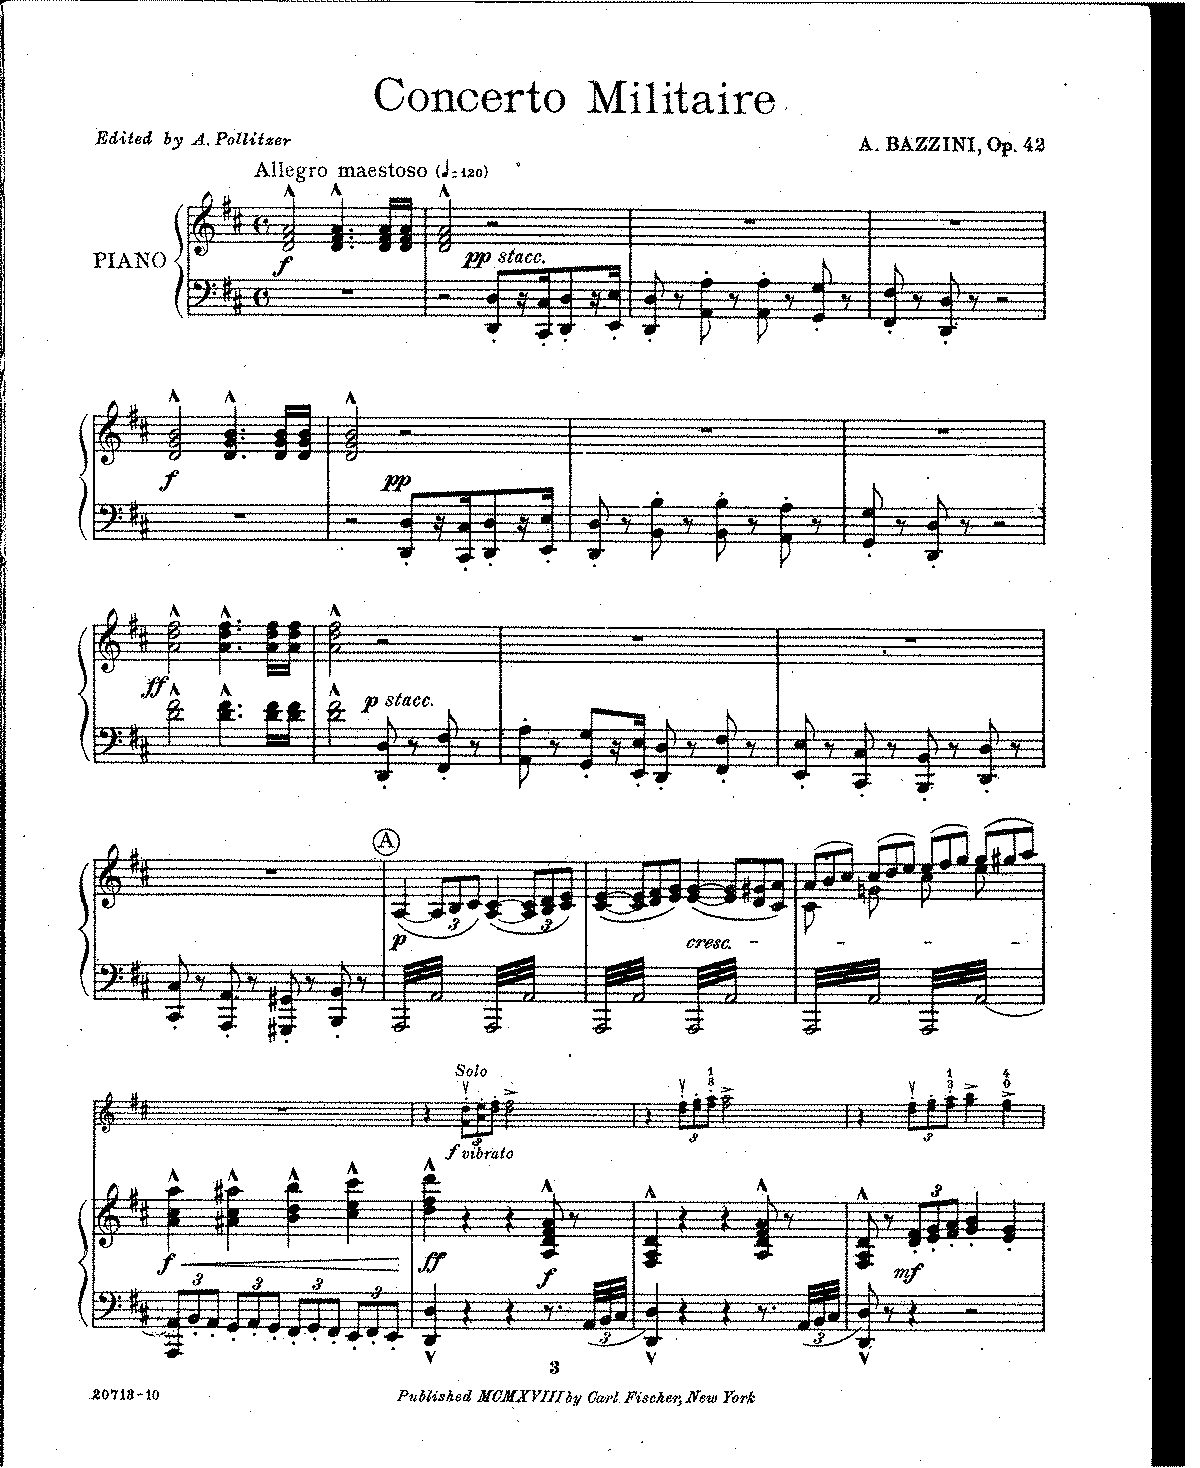 PMLP163282-PIANO PART.pdf